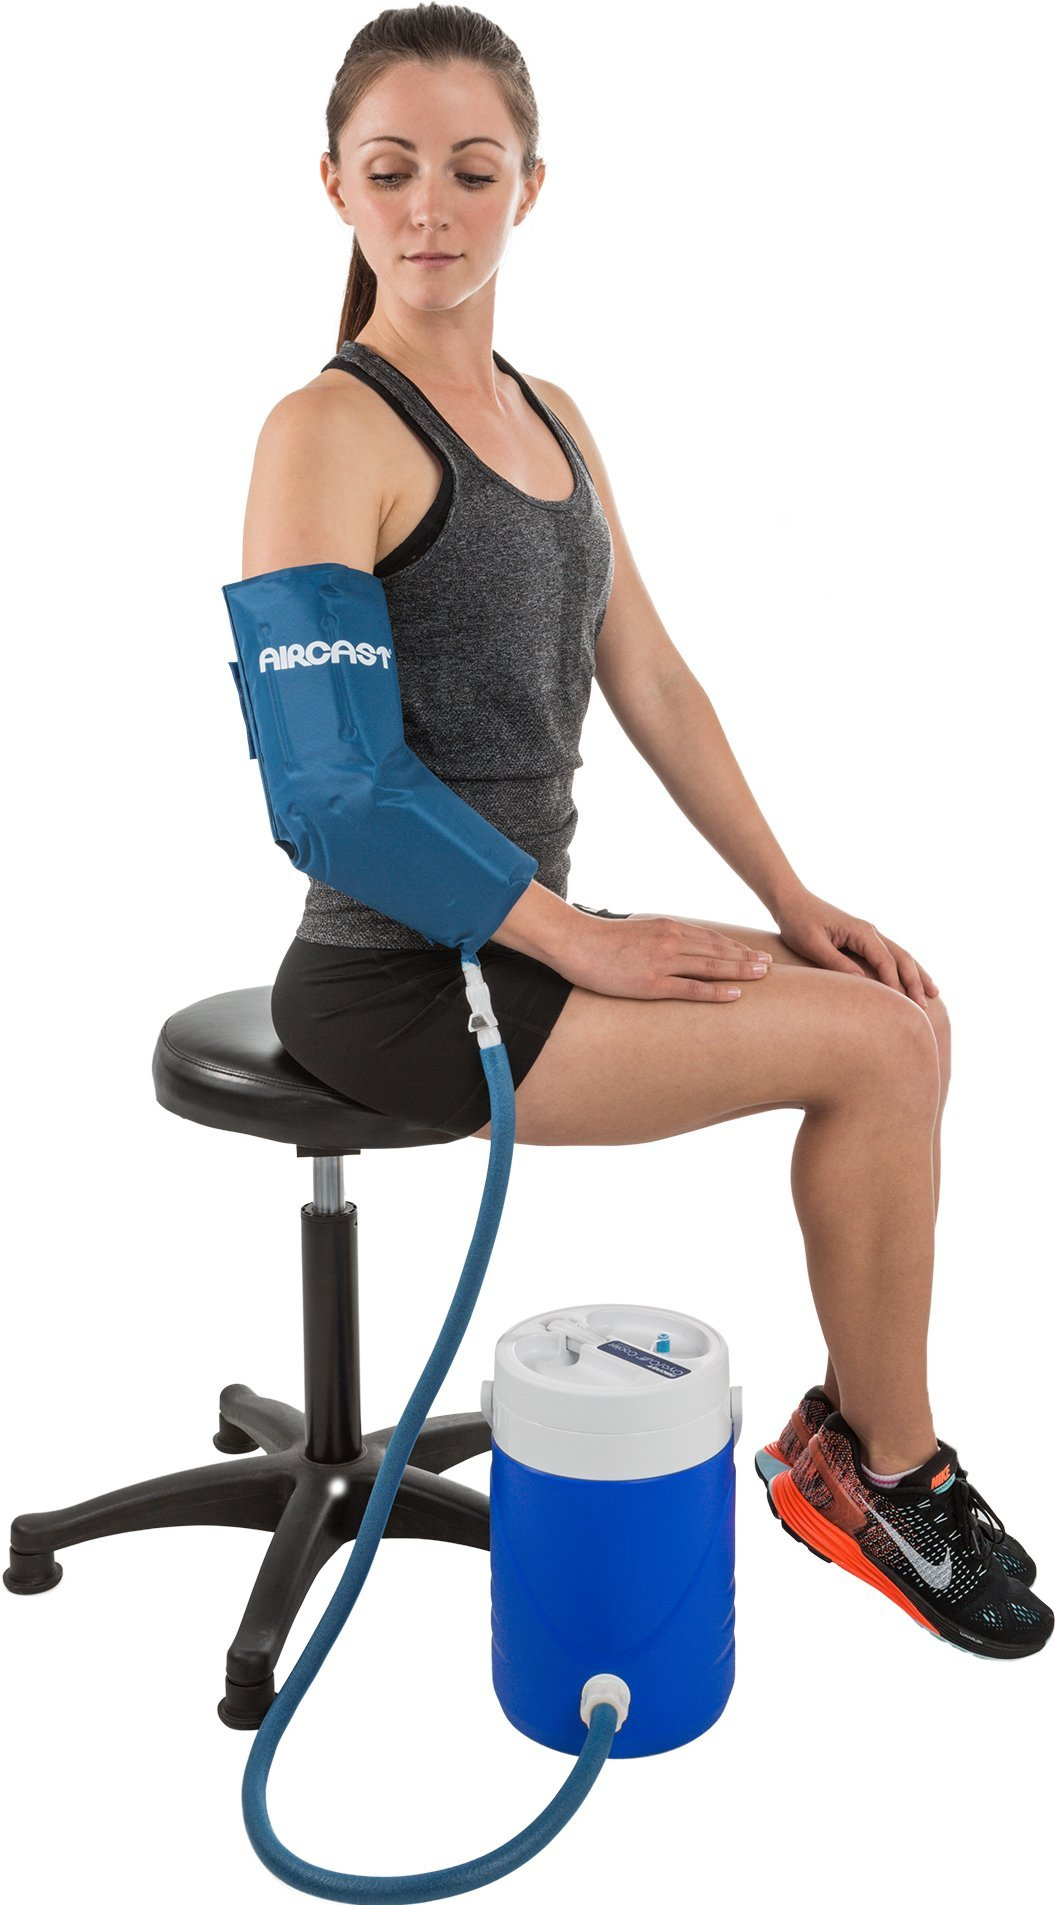 Aircast Elbow Cryo/Cuff w/ Cooler - Universal by DonJoy (Image #4)